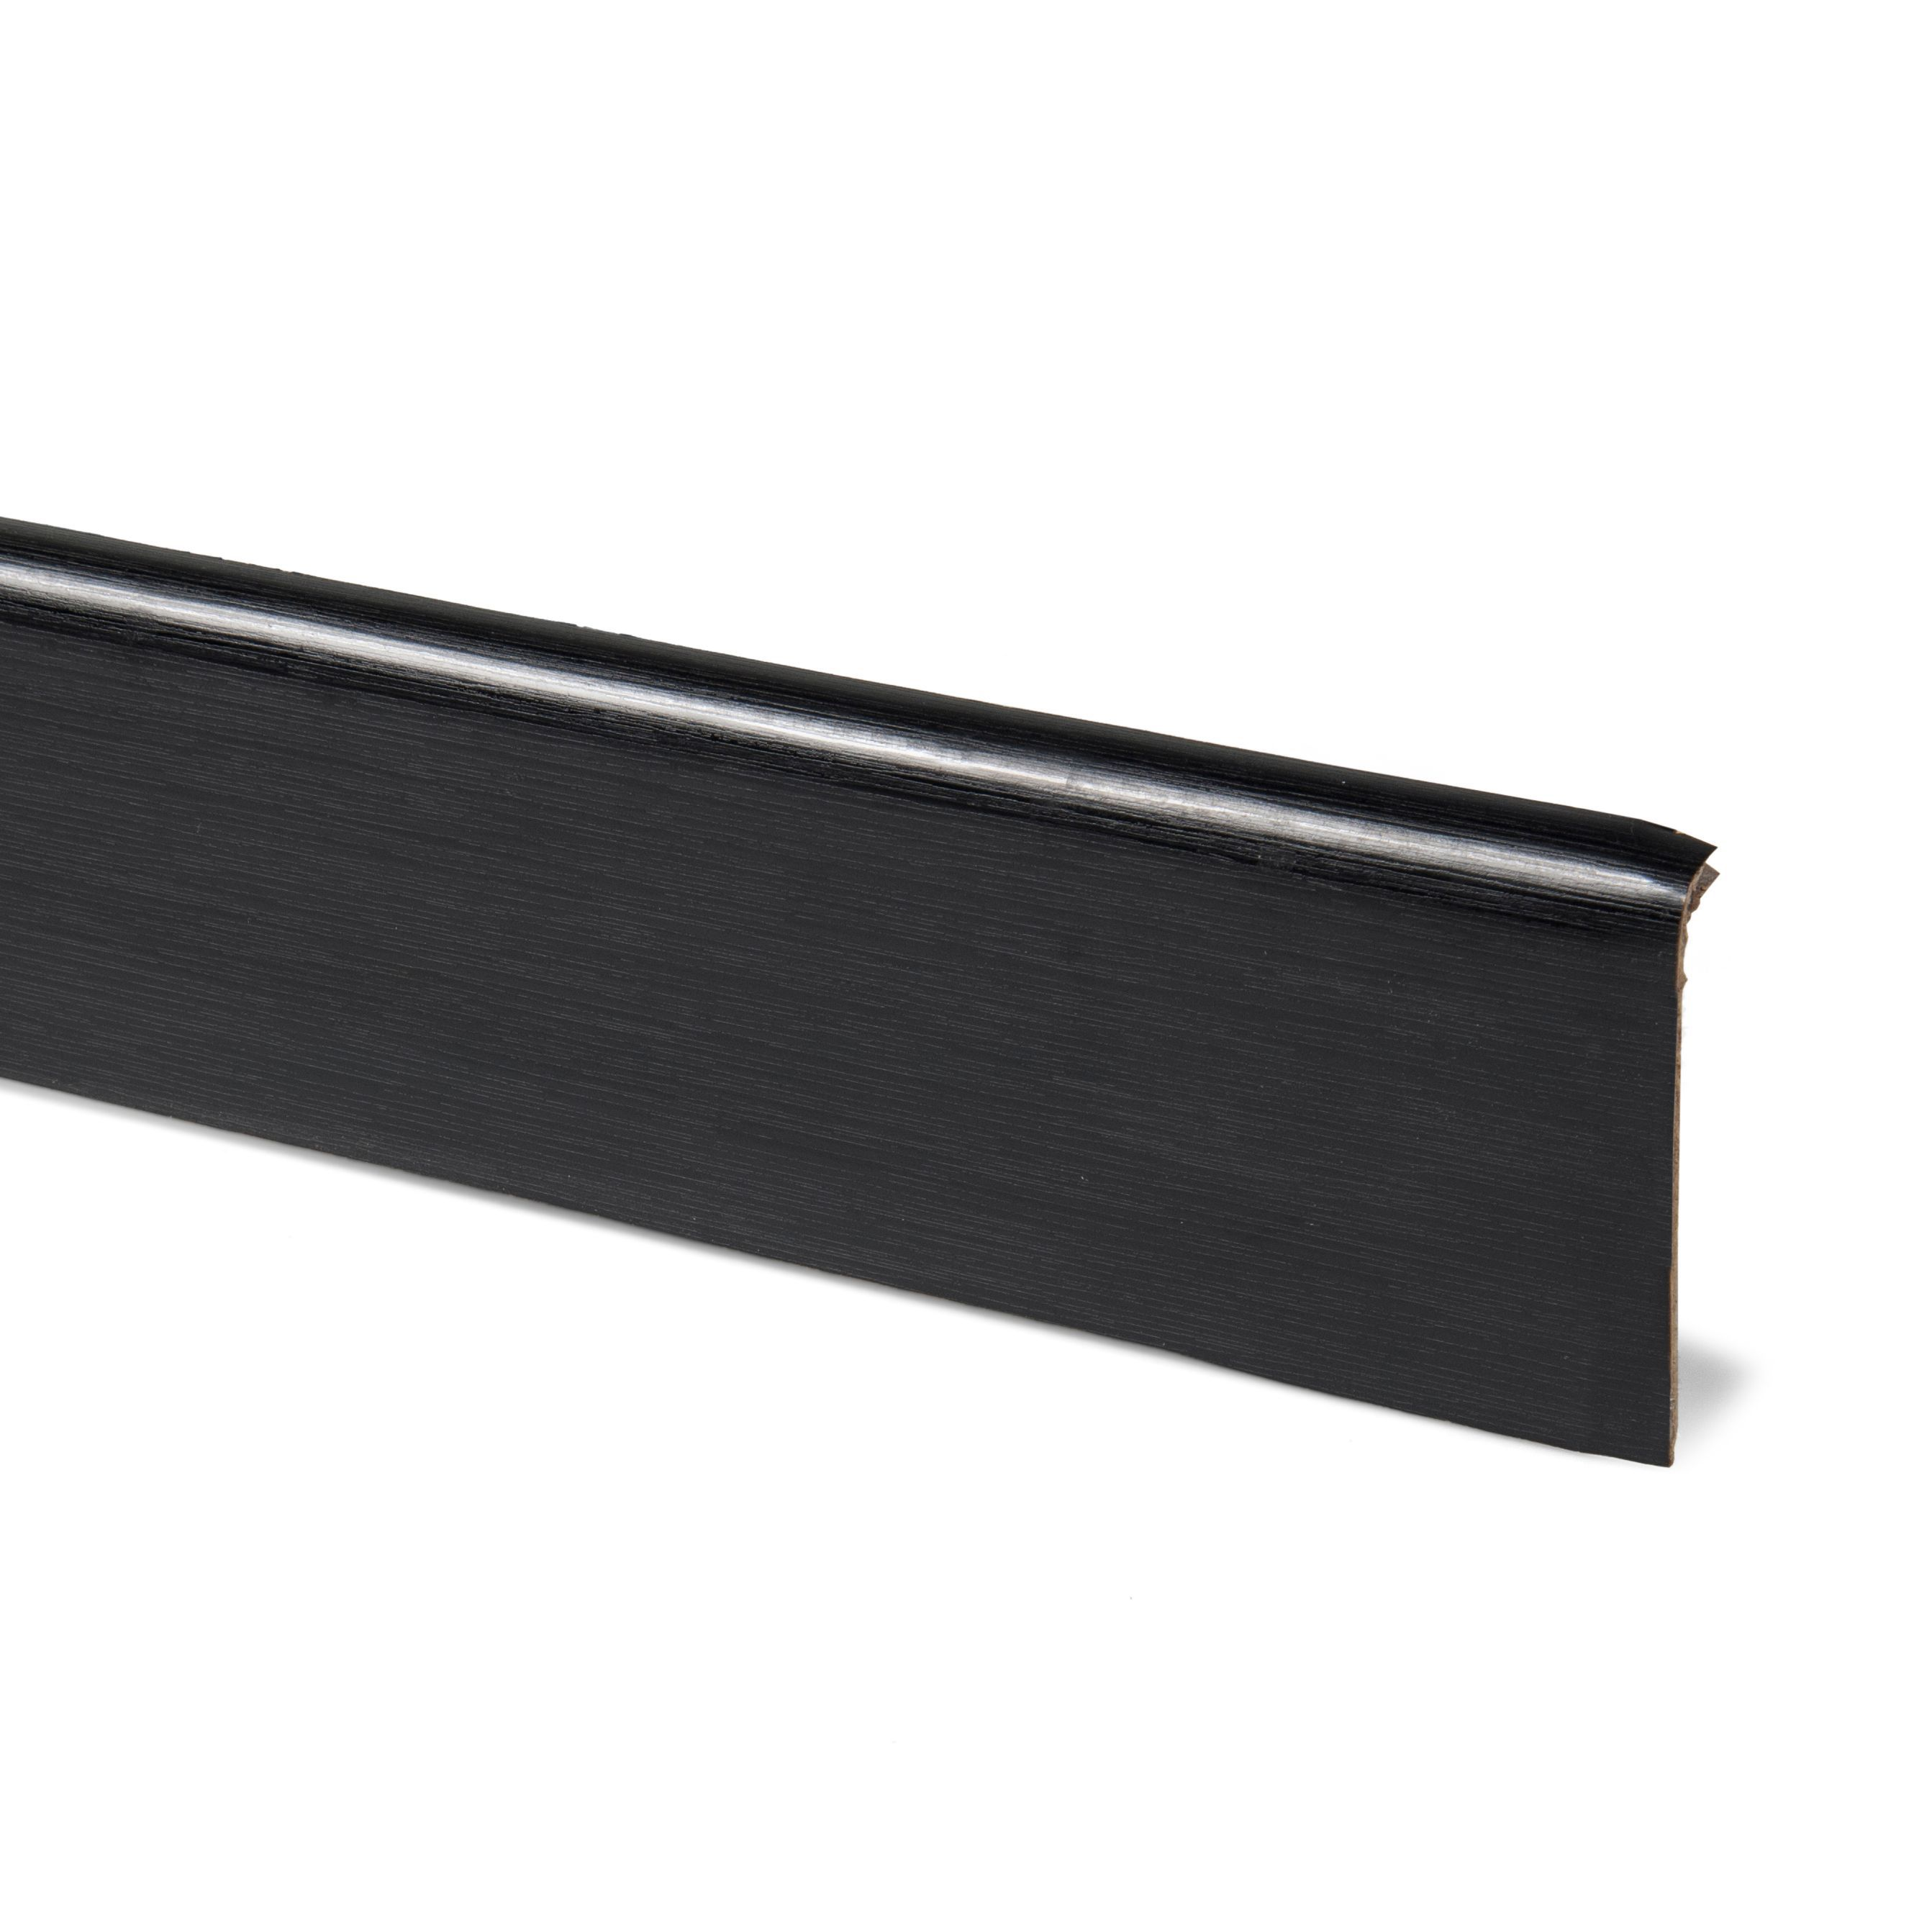 IT Kitchens Worktop up stand accessory pack | Departments | DIY at B&Q